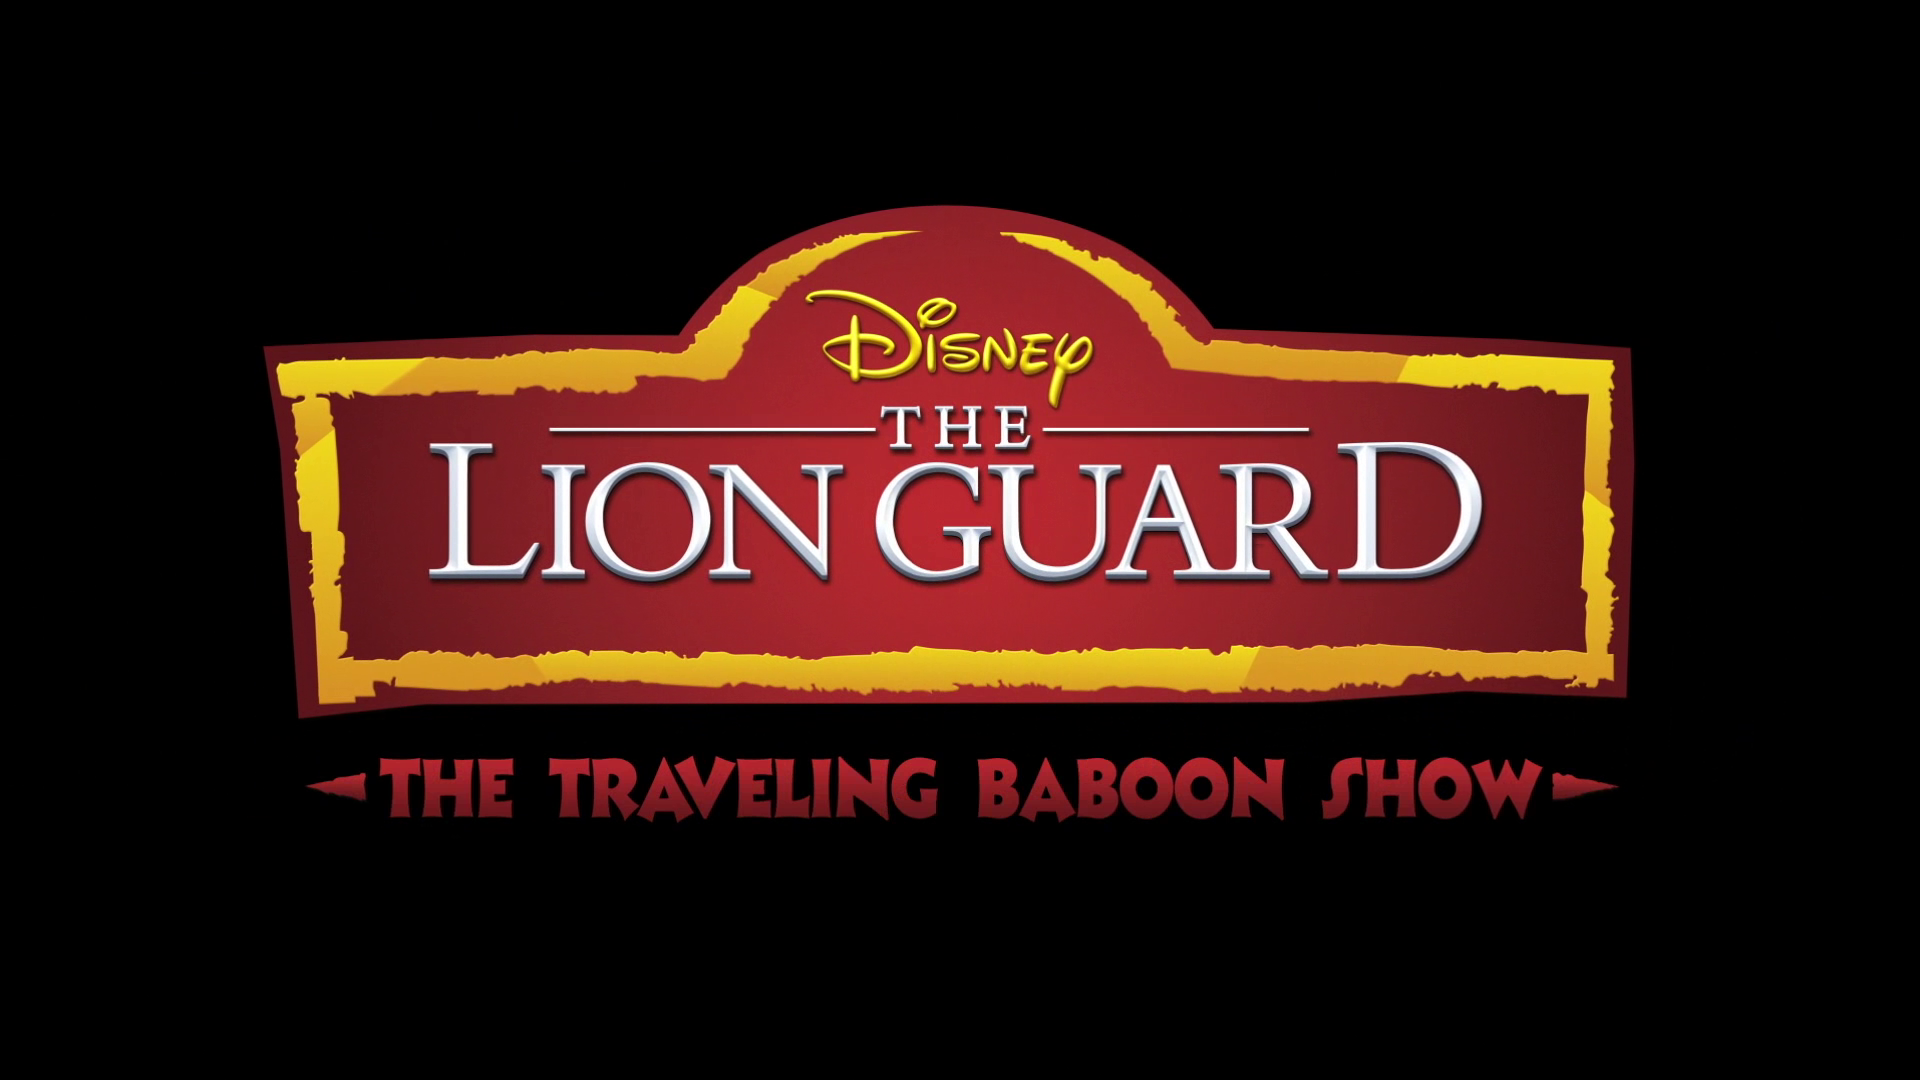 The Traveling Baboon Show